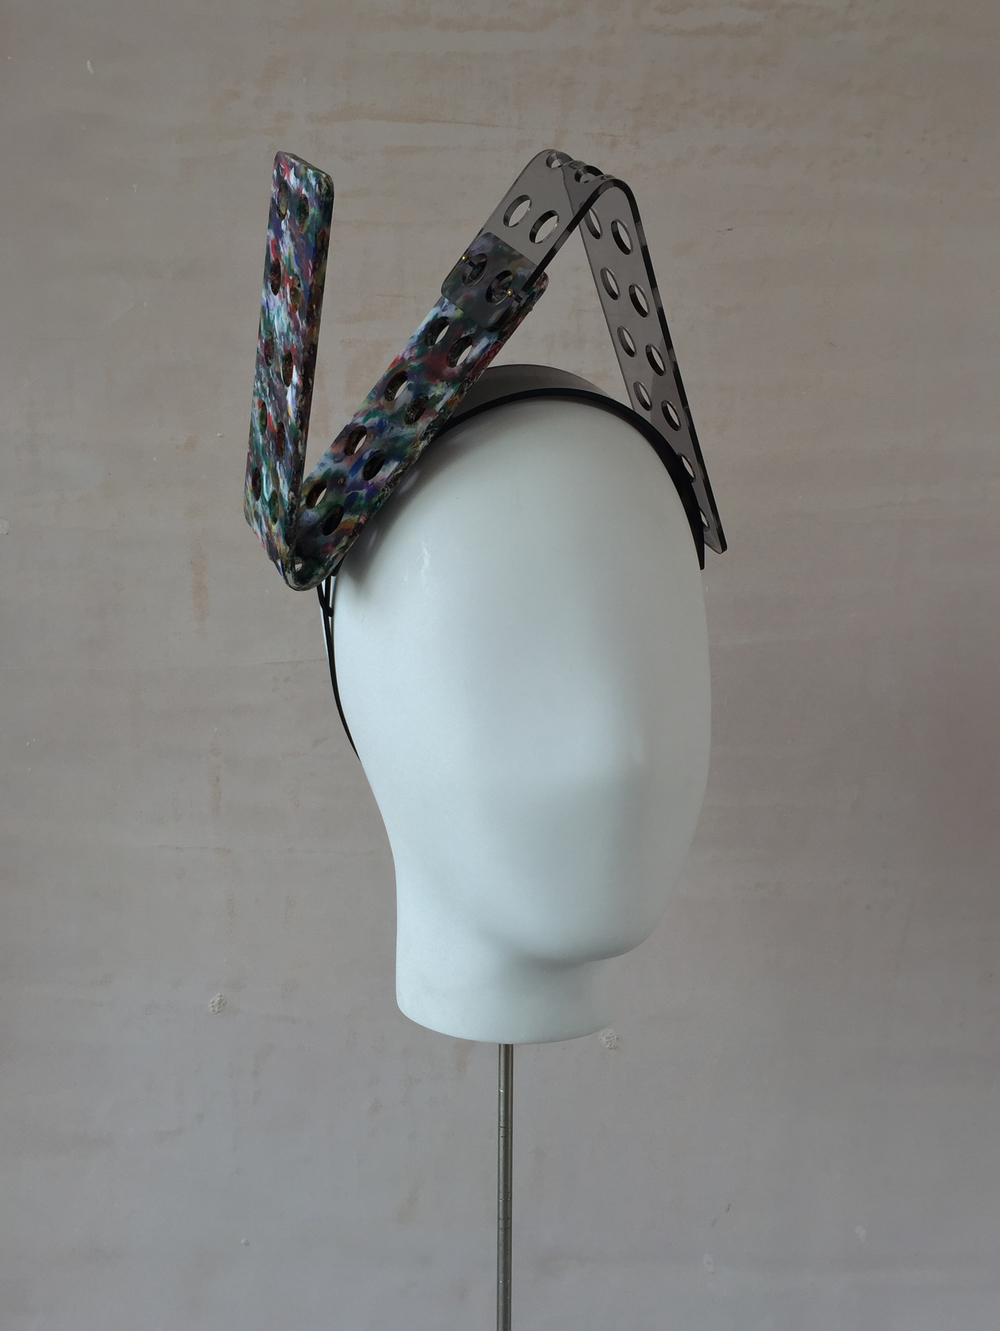 Recycled Plastic Roof Headpiece